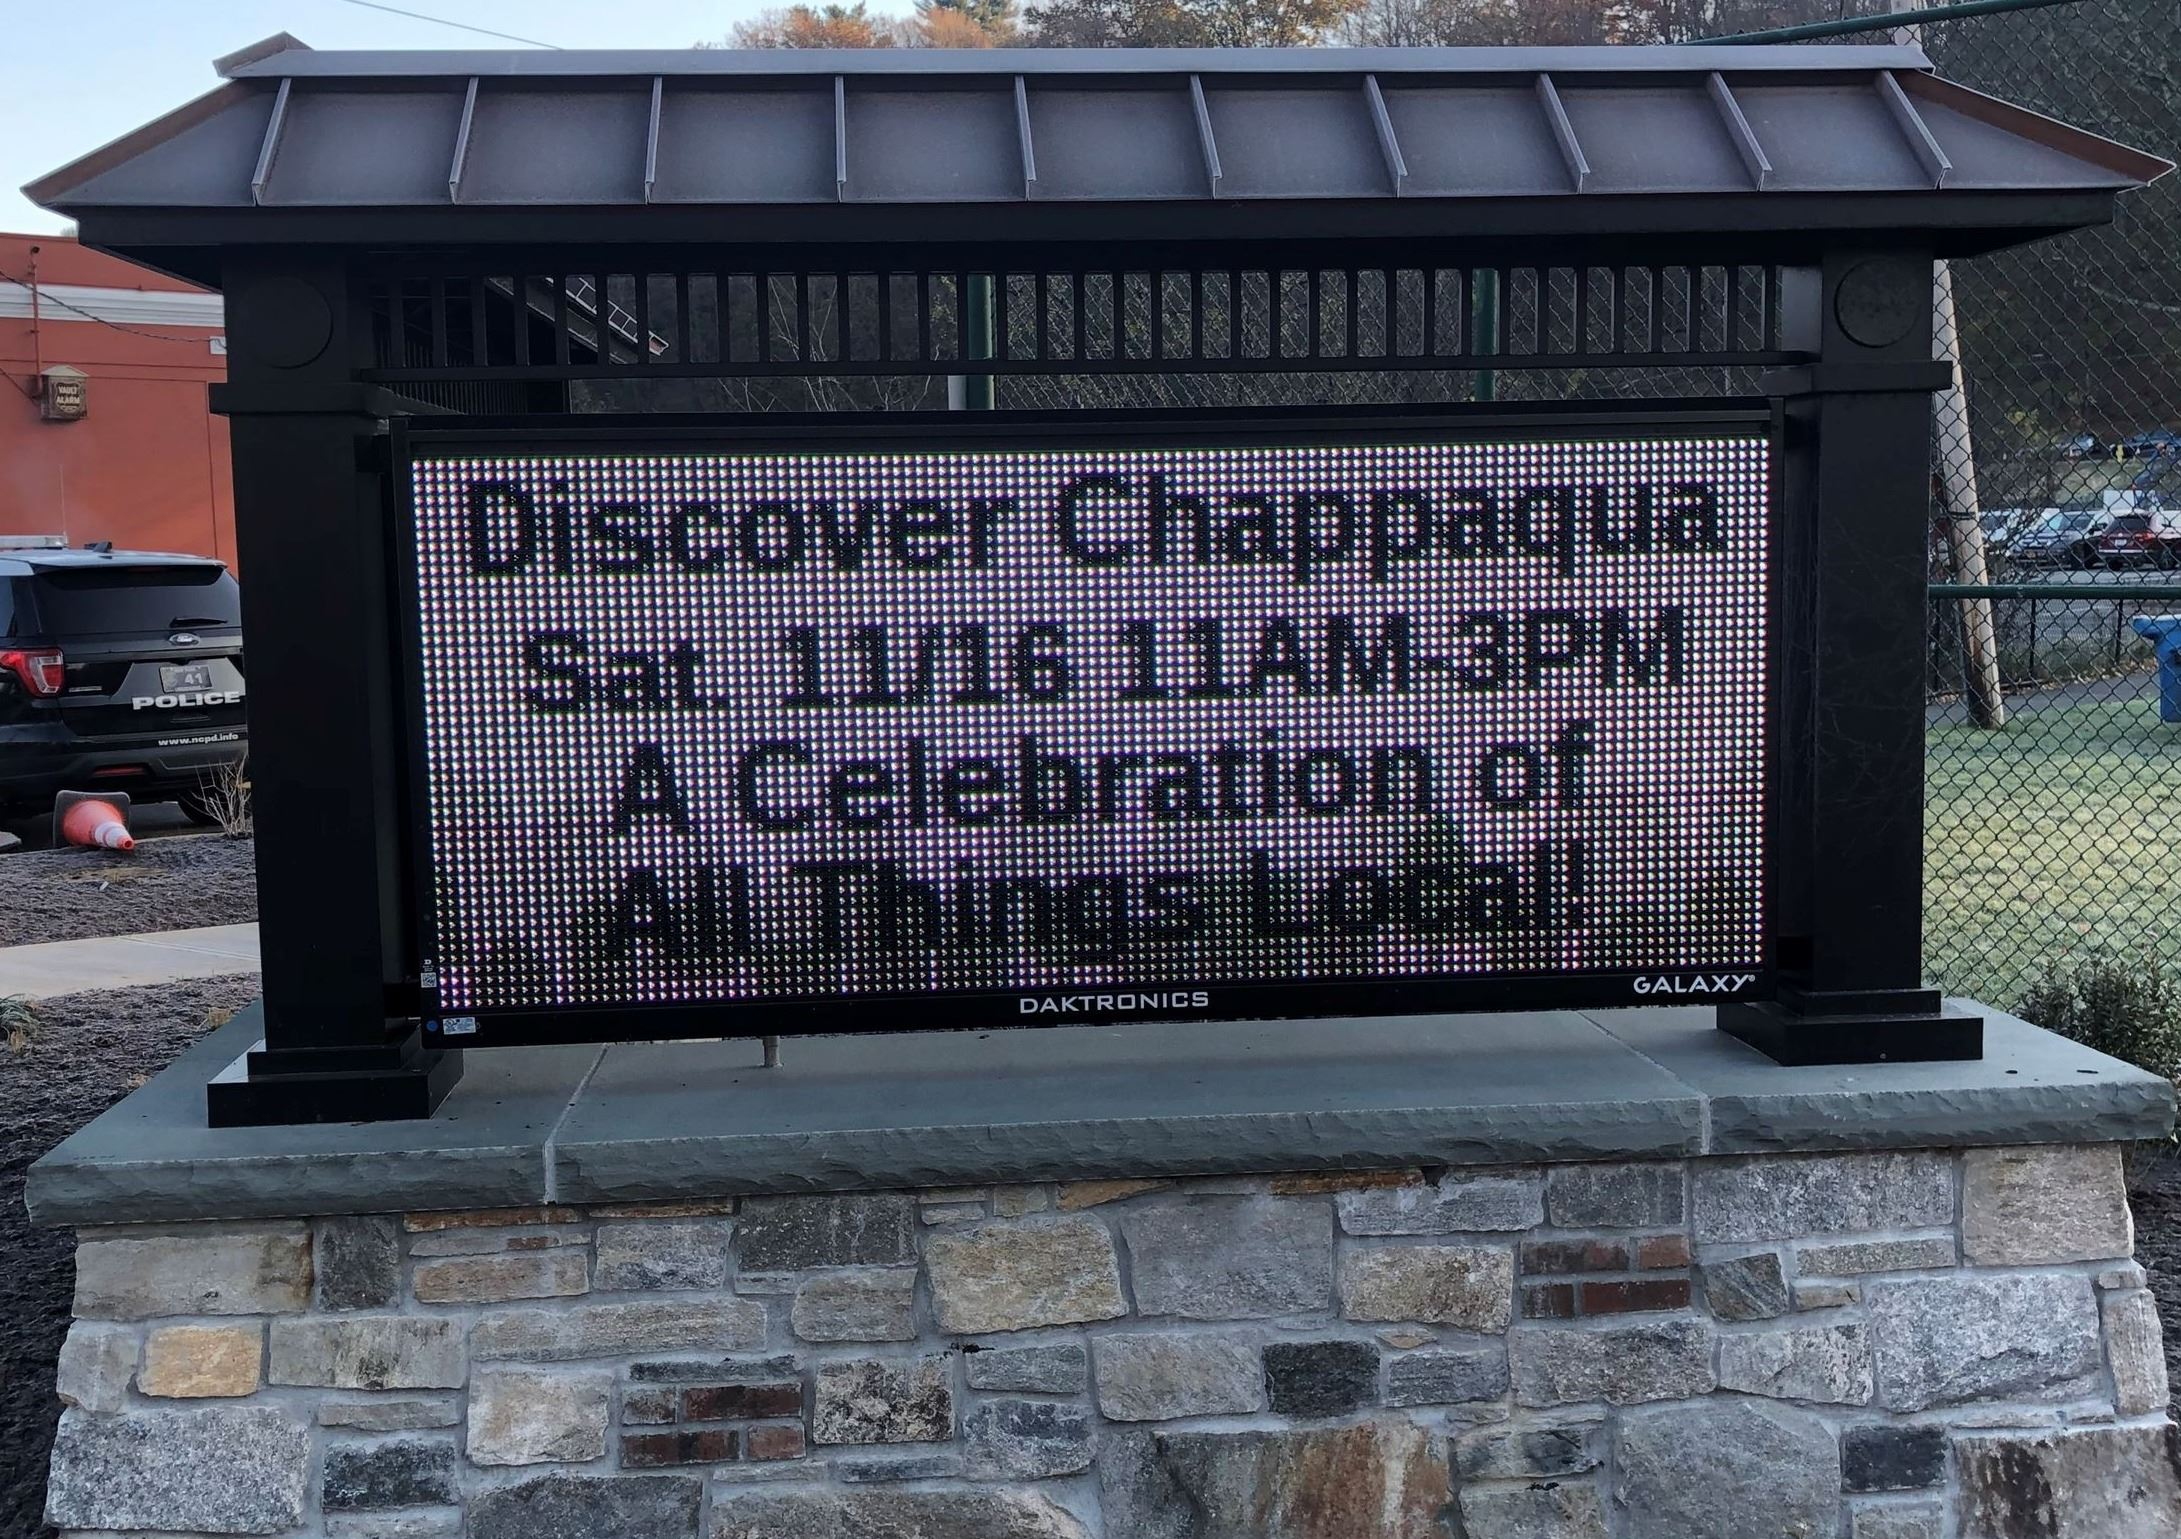 Discover Chappaqua on Downtown Digital Sign